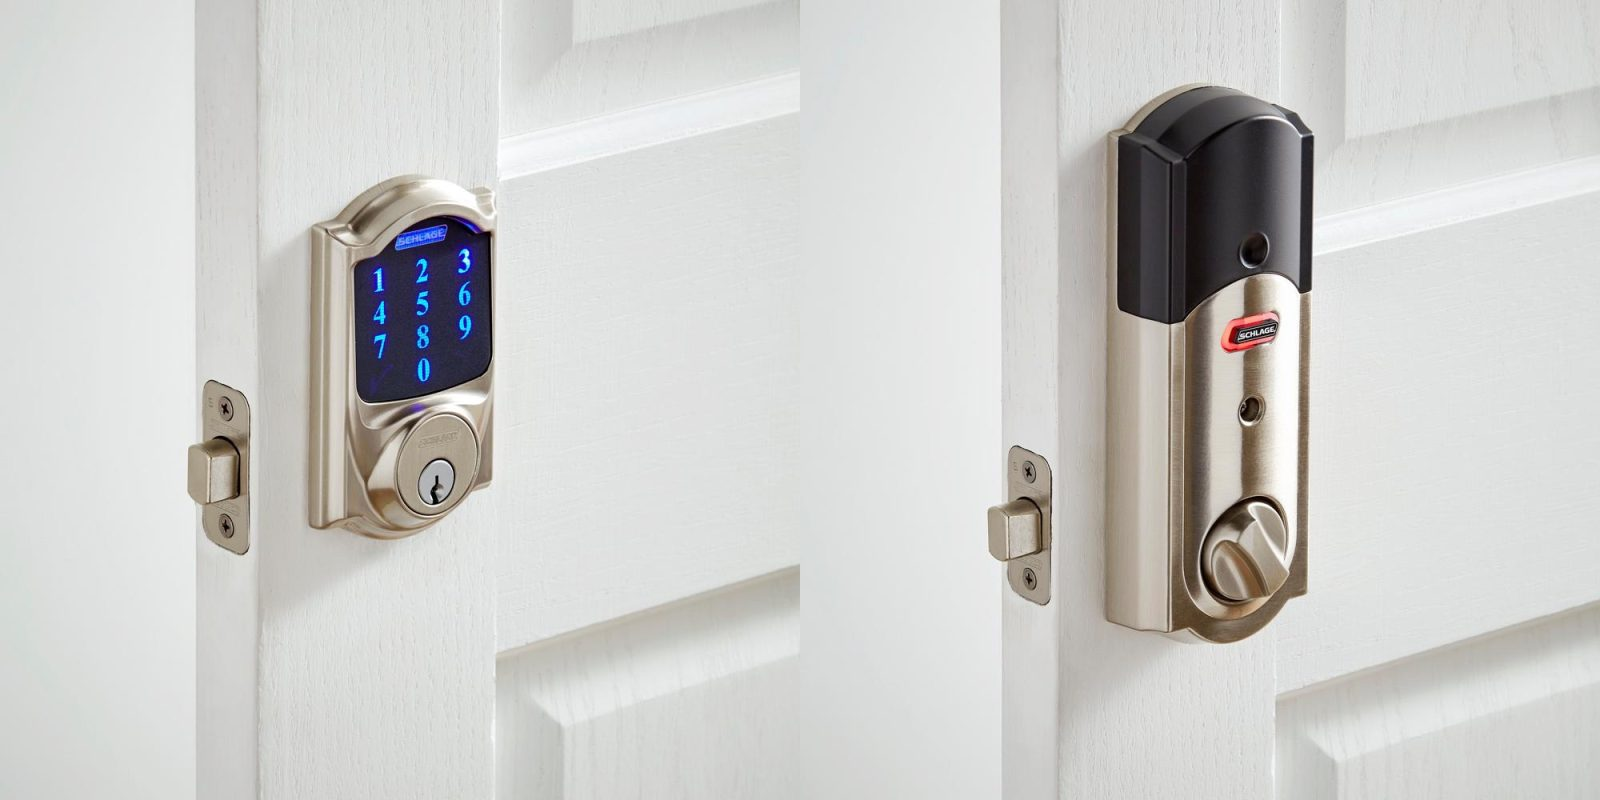 An Amazon low awaits for Schlage's Z-Wave Plus Deadbolt at $162.50 (Reg. $200)